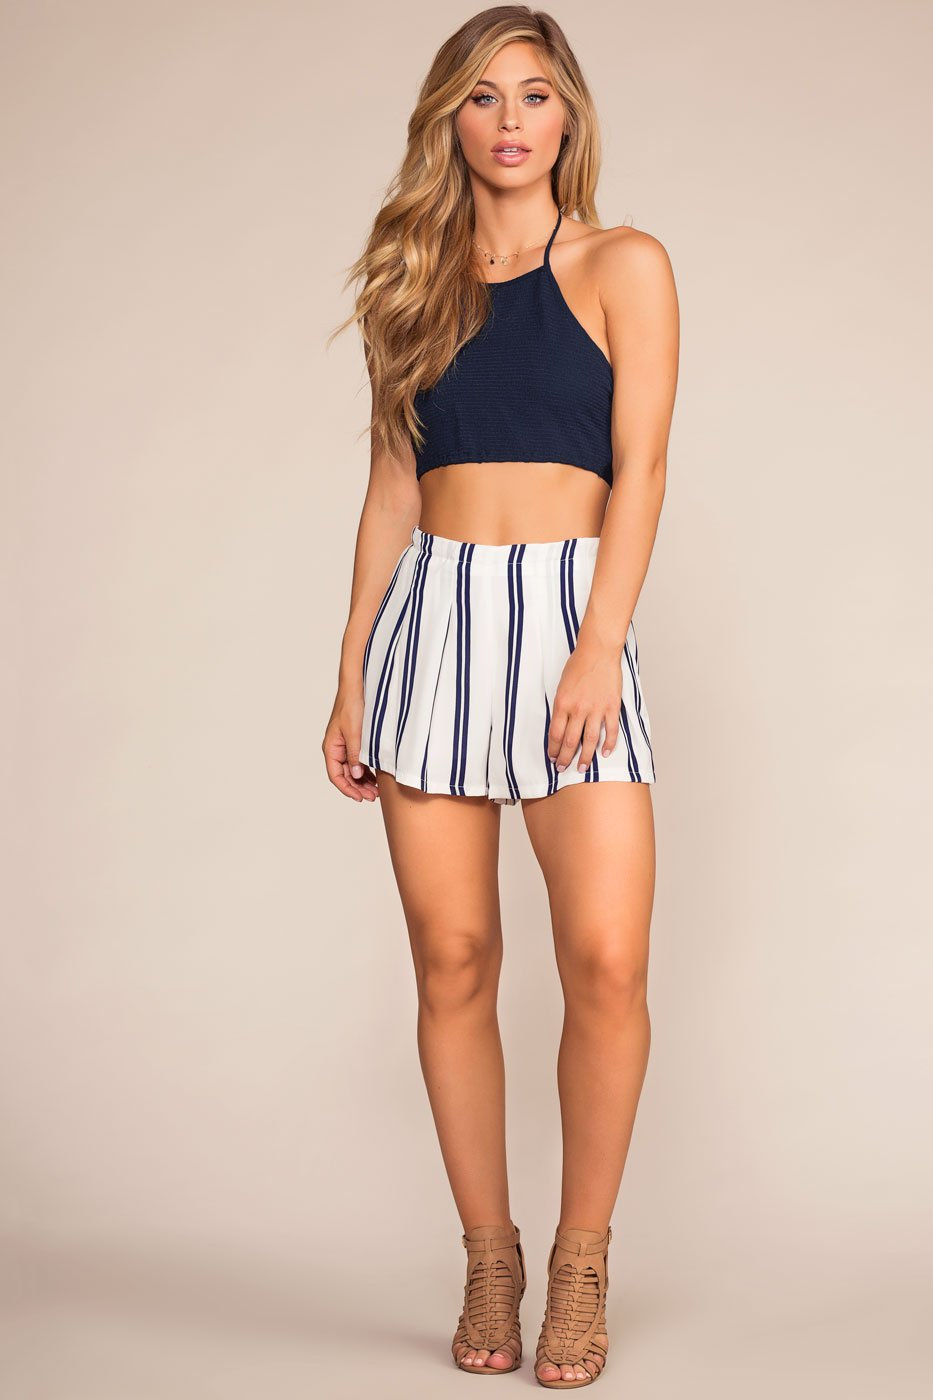 Tops - Bring It Back Halter Crop Top - Navy